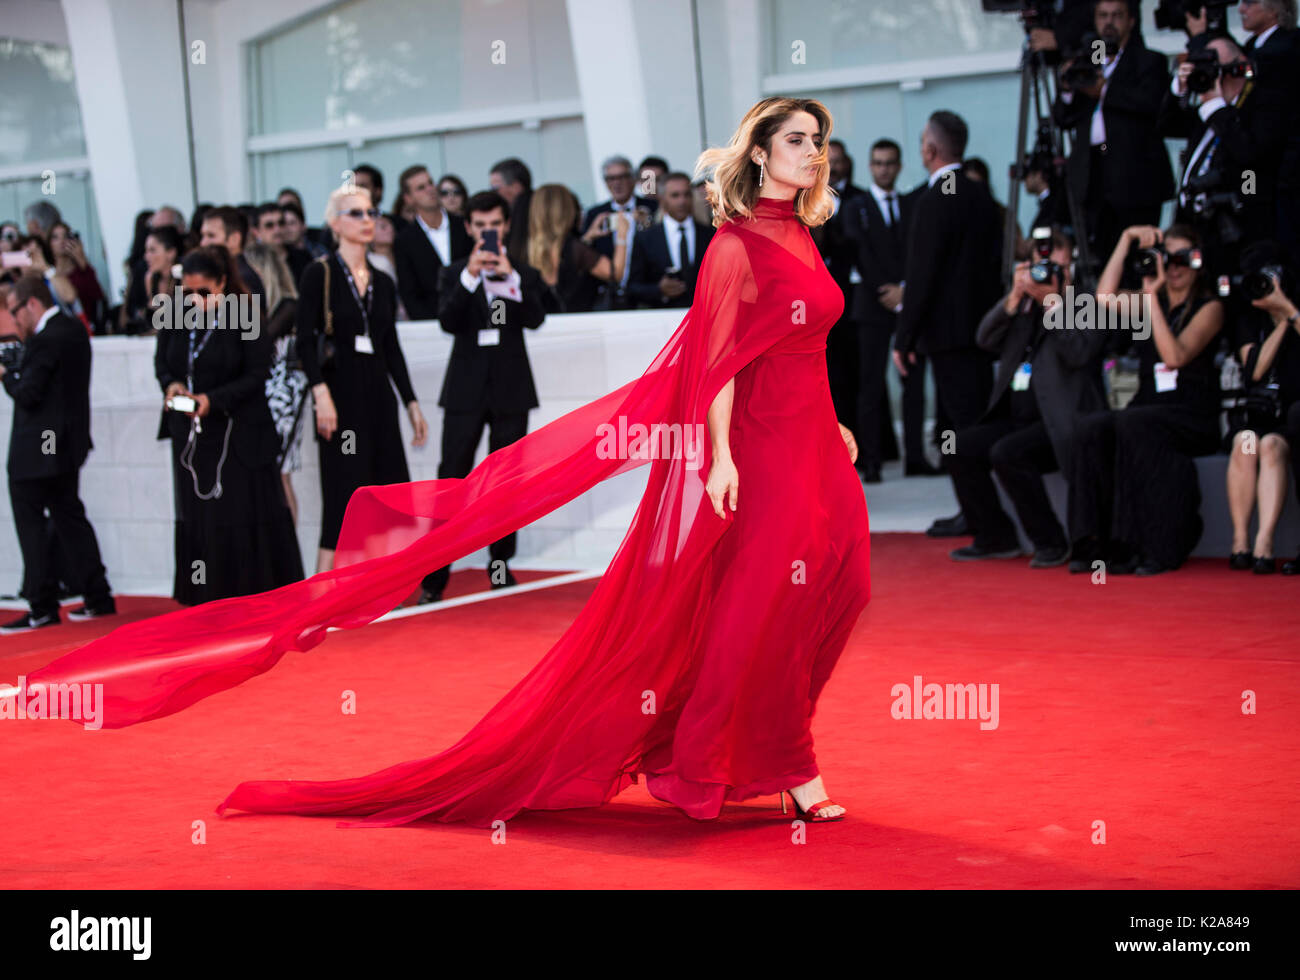 Venice, Italy. 30th Aug, 2017. Actress Greta Scarano arrives on the red carpet of the premiere of the film 'Downsizing' which opens the 74th edition of the Venice Film Festival in Venice, Italy, on Aug. 30, 2017. The 74th edition of the Venice Film Festival lasts from Aug. 30 to Sept. 9. Credit: Jin Yu/Xinhua/Alamy Live News - Stock Image